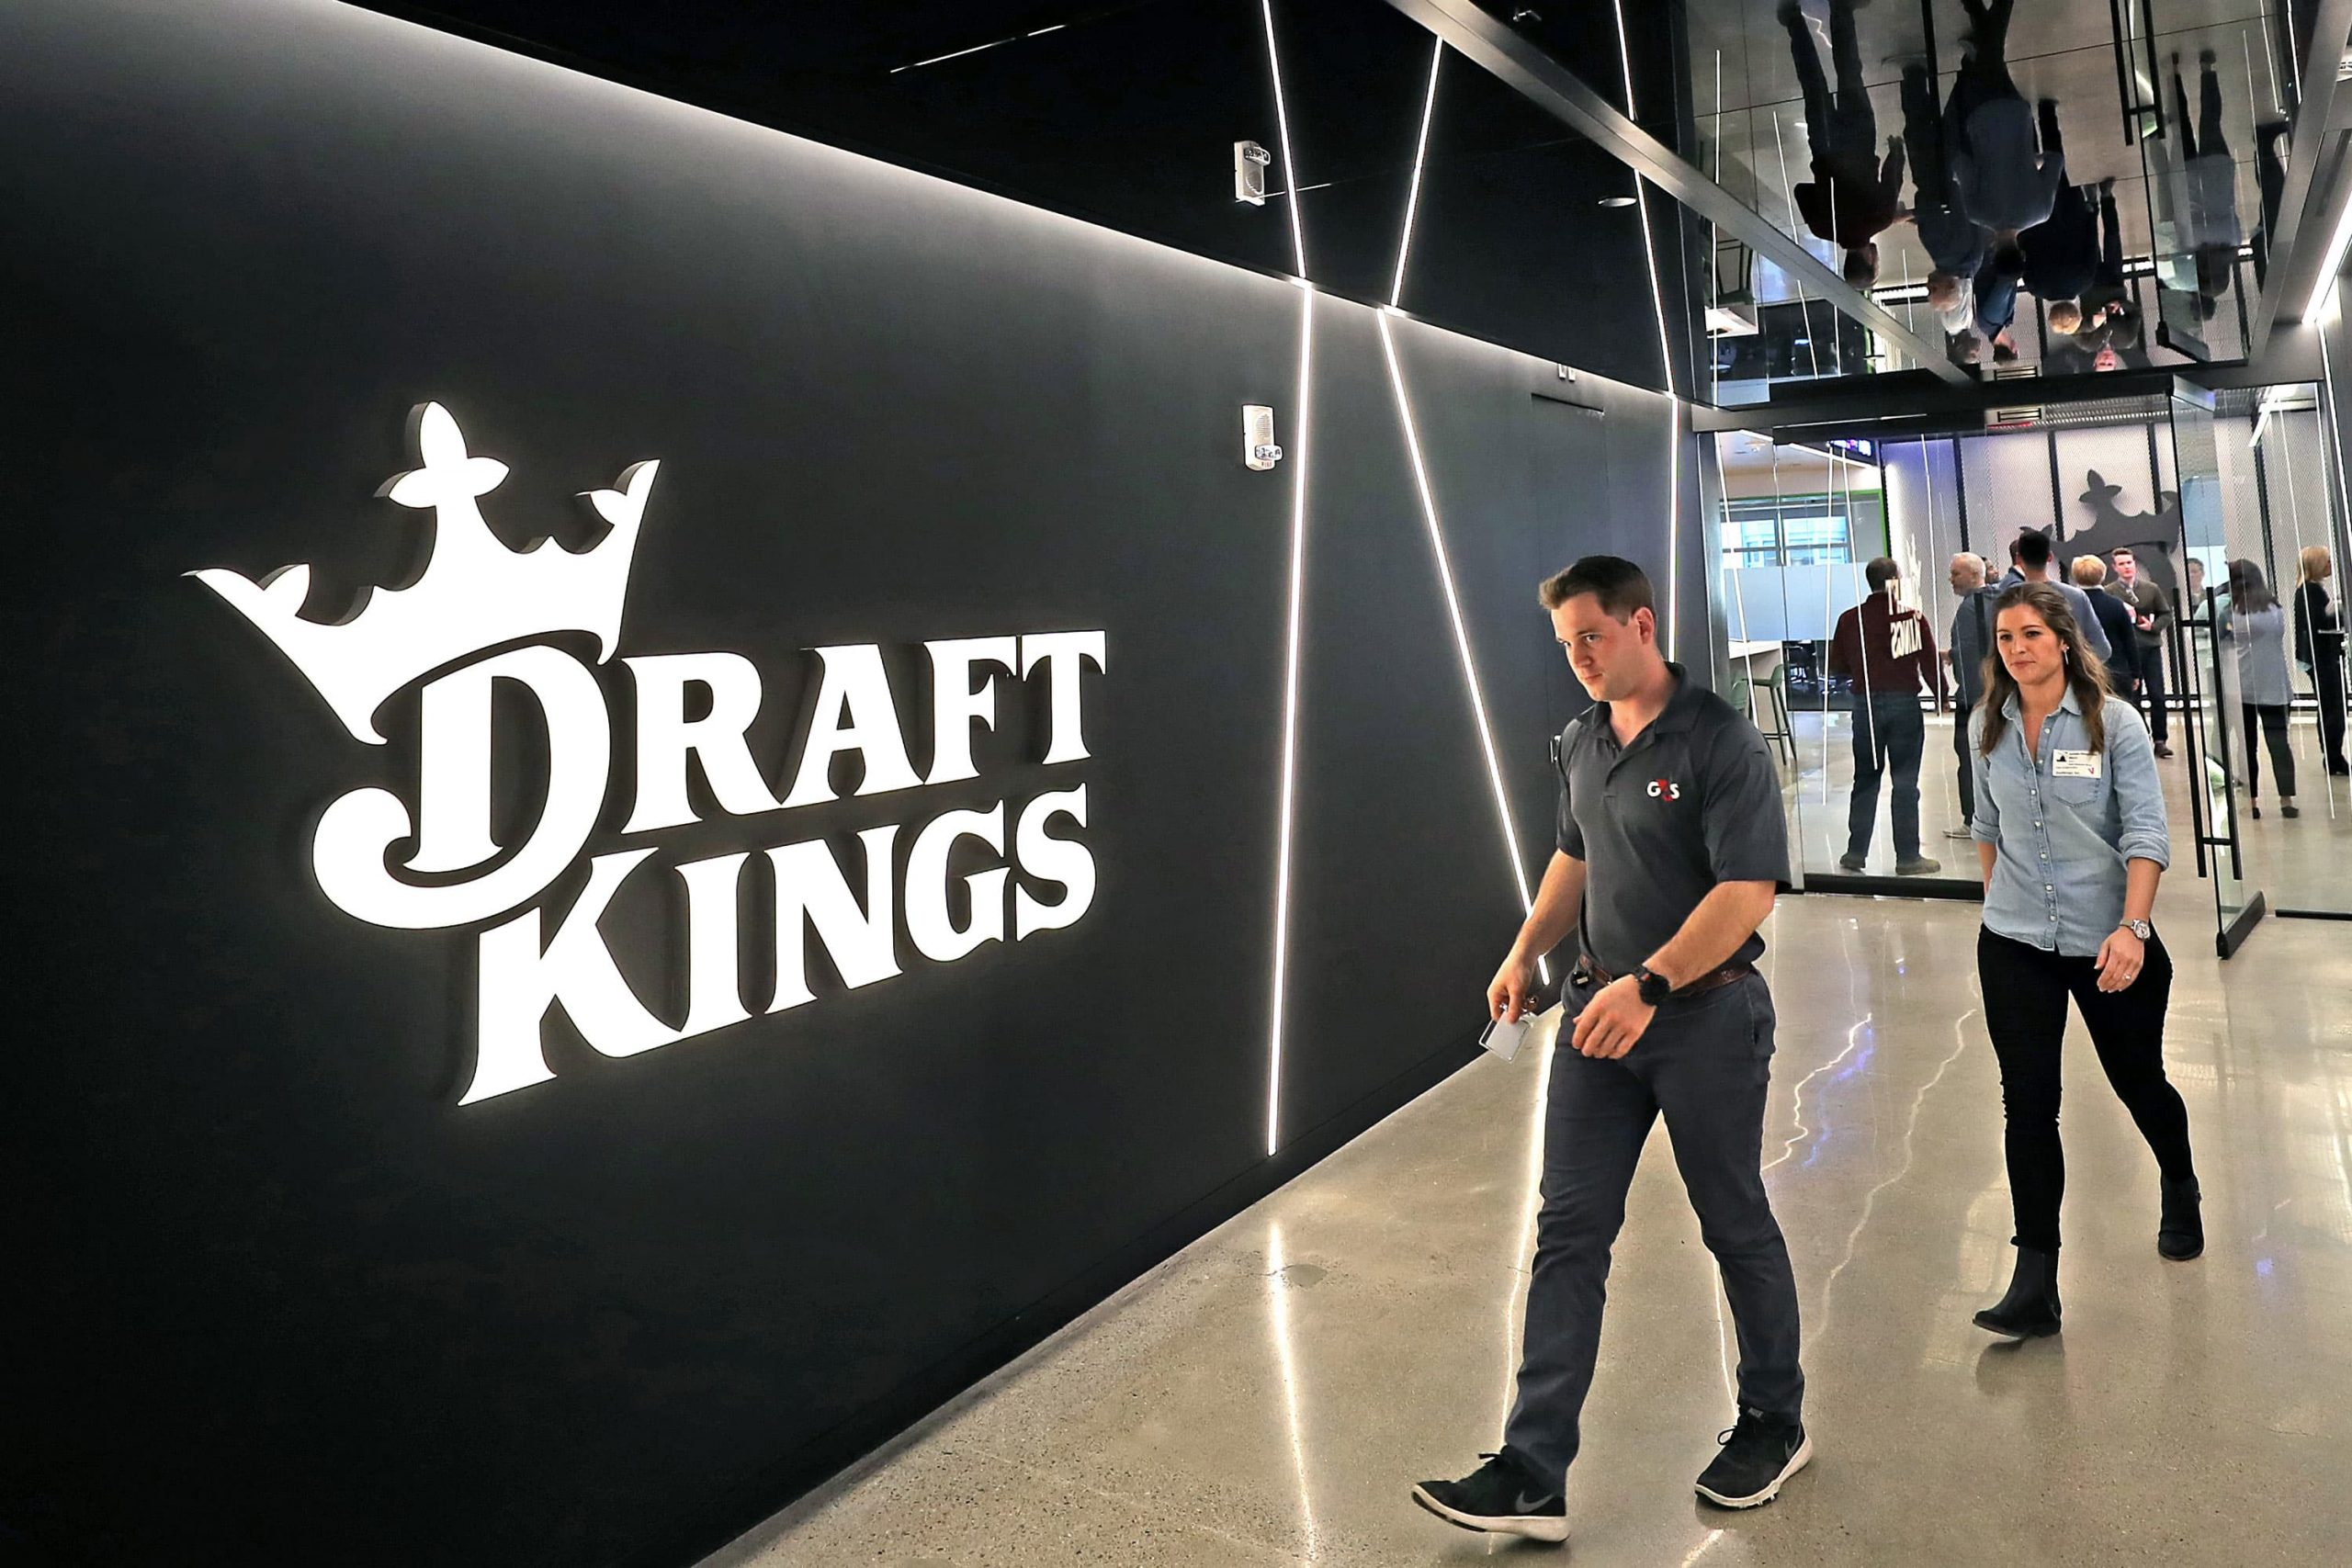 DraftKings, QuantumScape, PPG & more